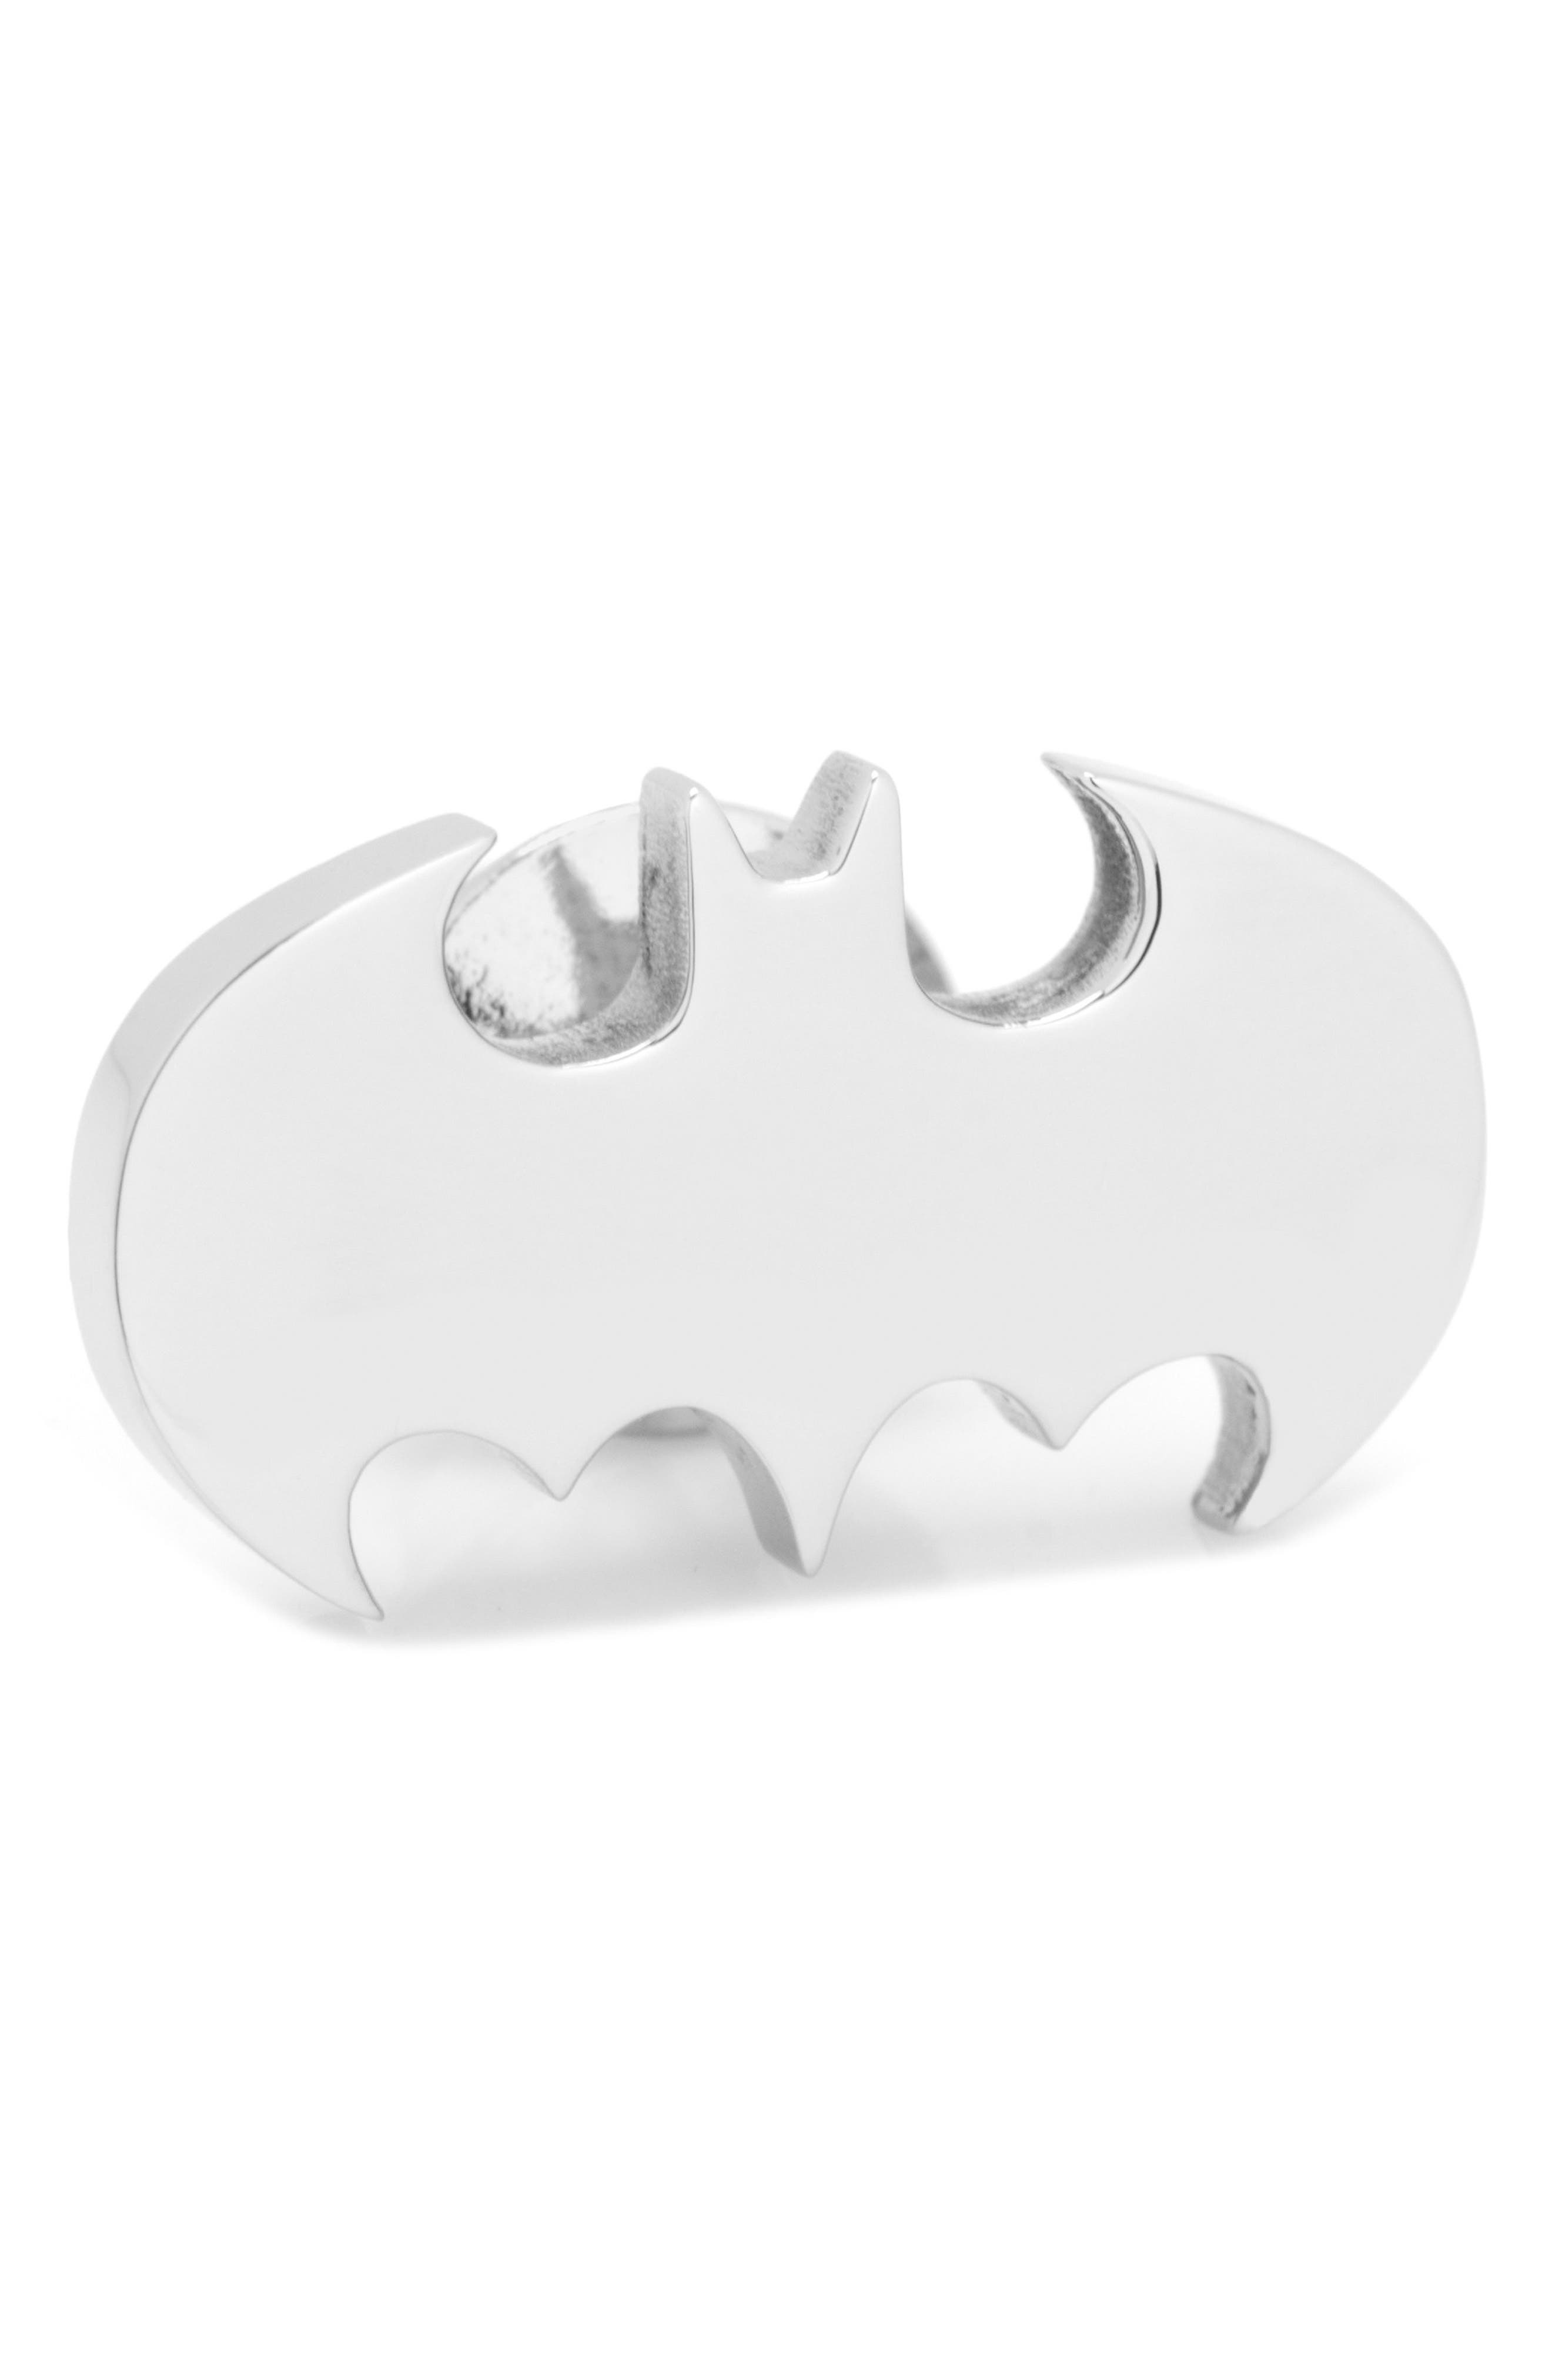 Batman Lapel Pin,                         Main,                         color, SILVER